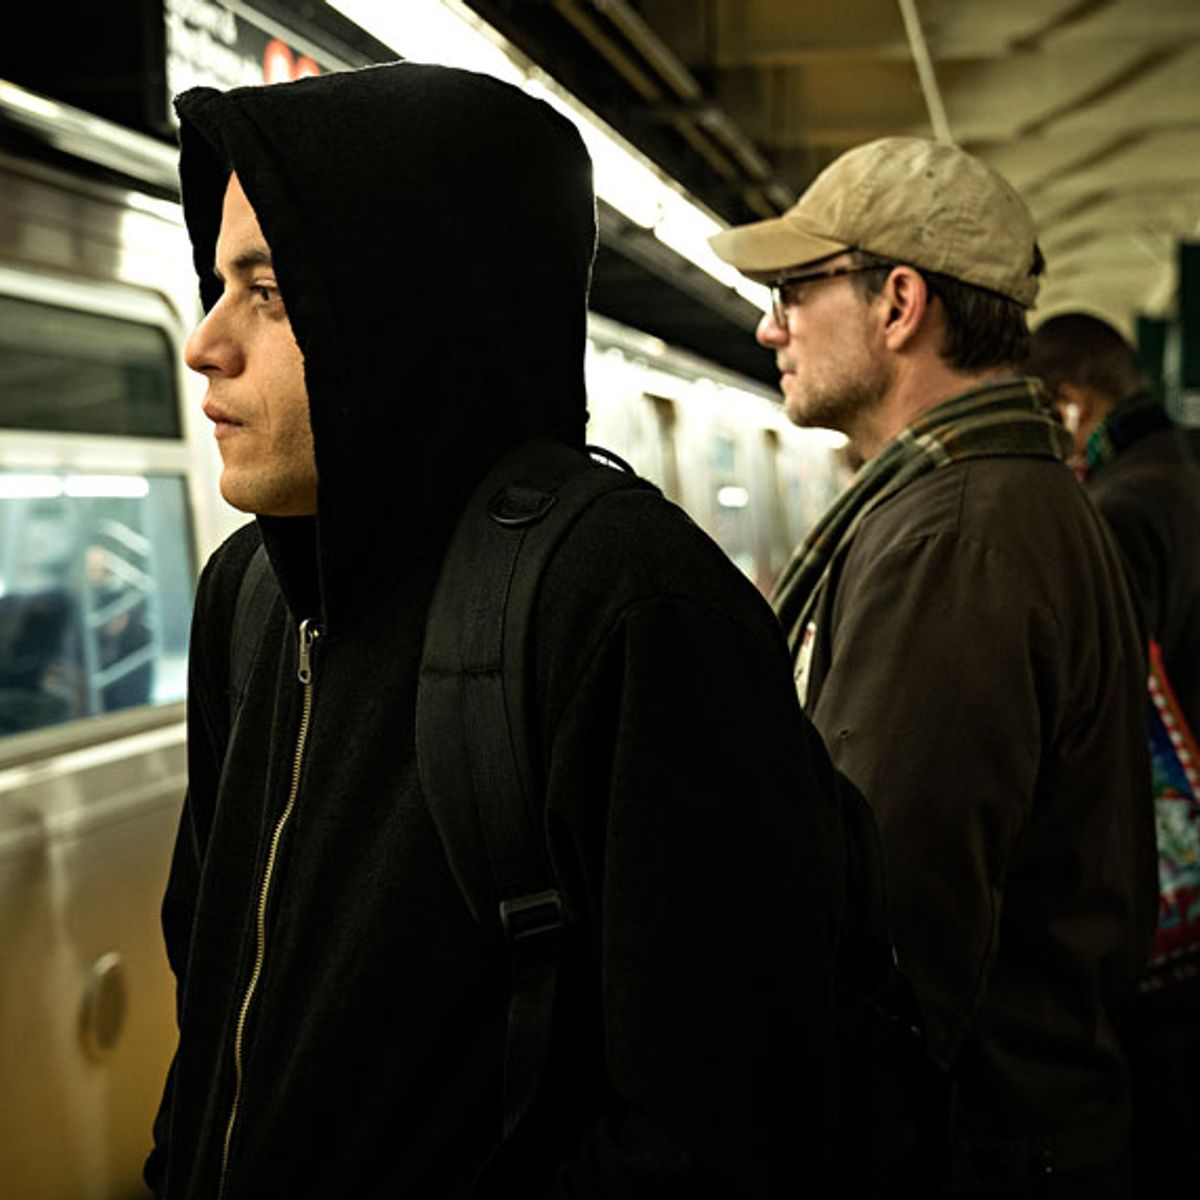 """Unhinged melody: """"Mr. Robot"""" puts a grim holiday bow on its endgame"""